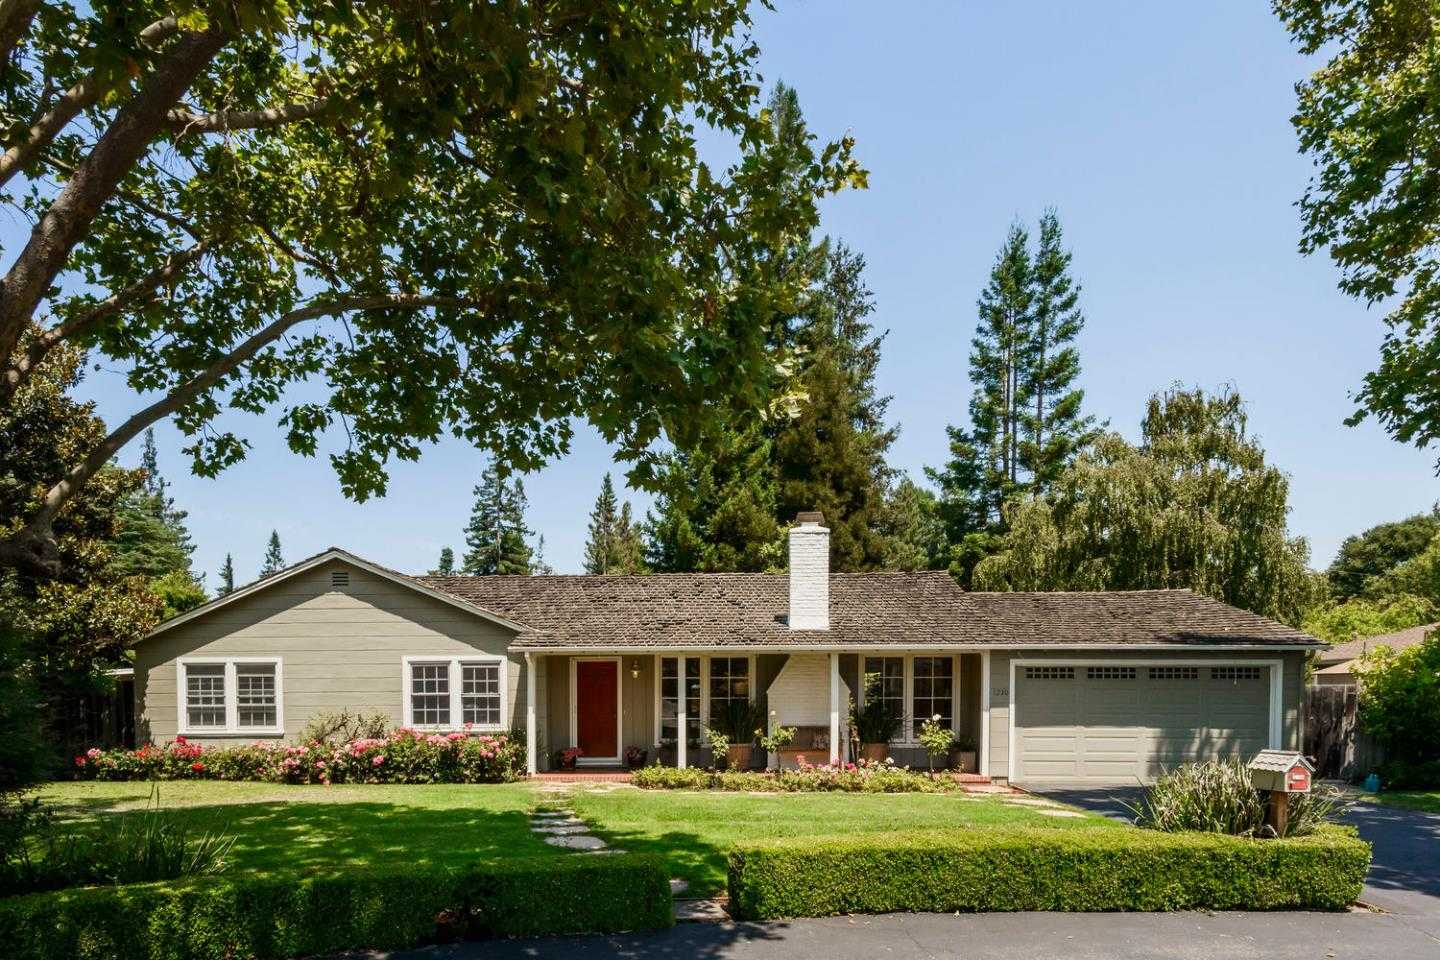 $3,895,000 - 4Br/3Ba -  for Sale in Menlo Park